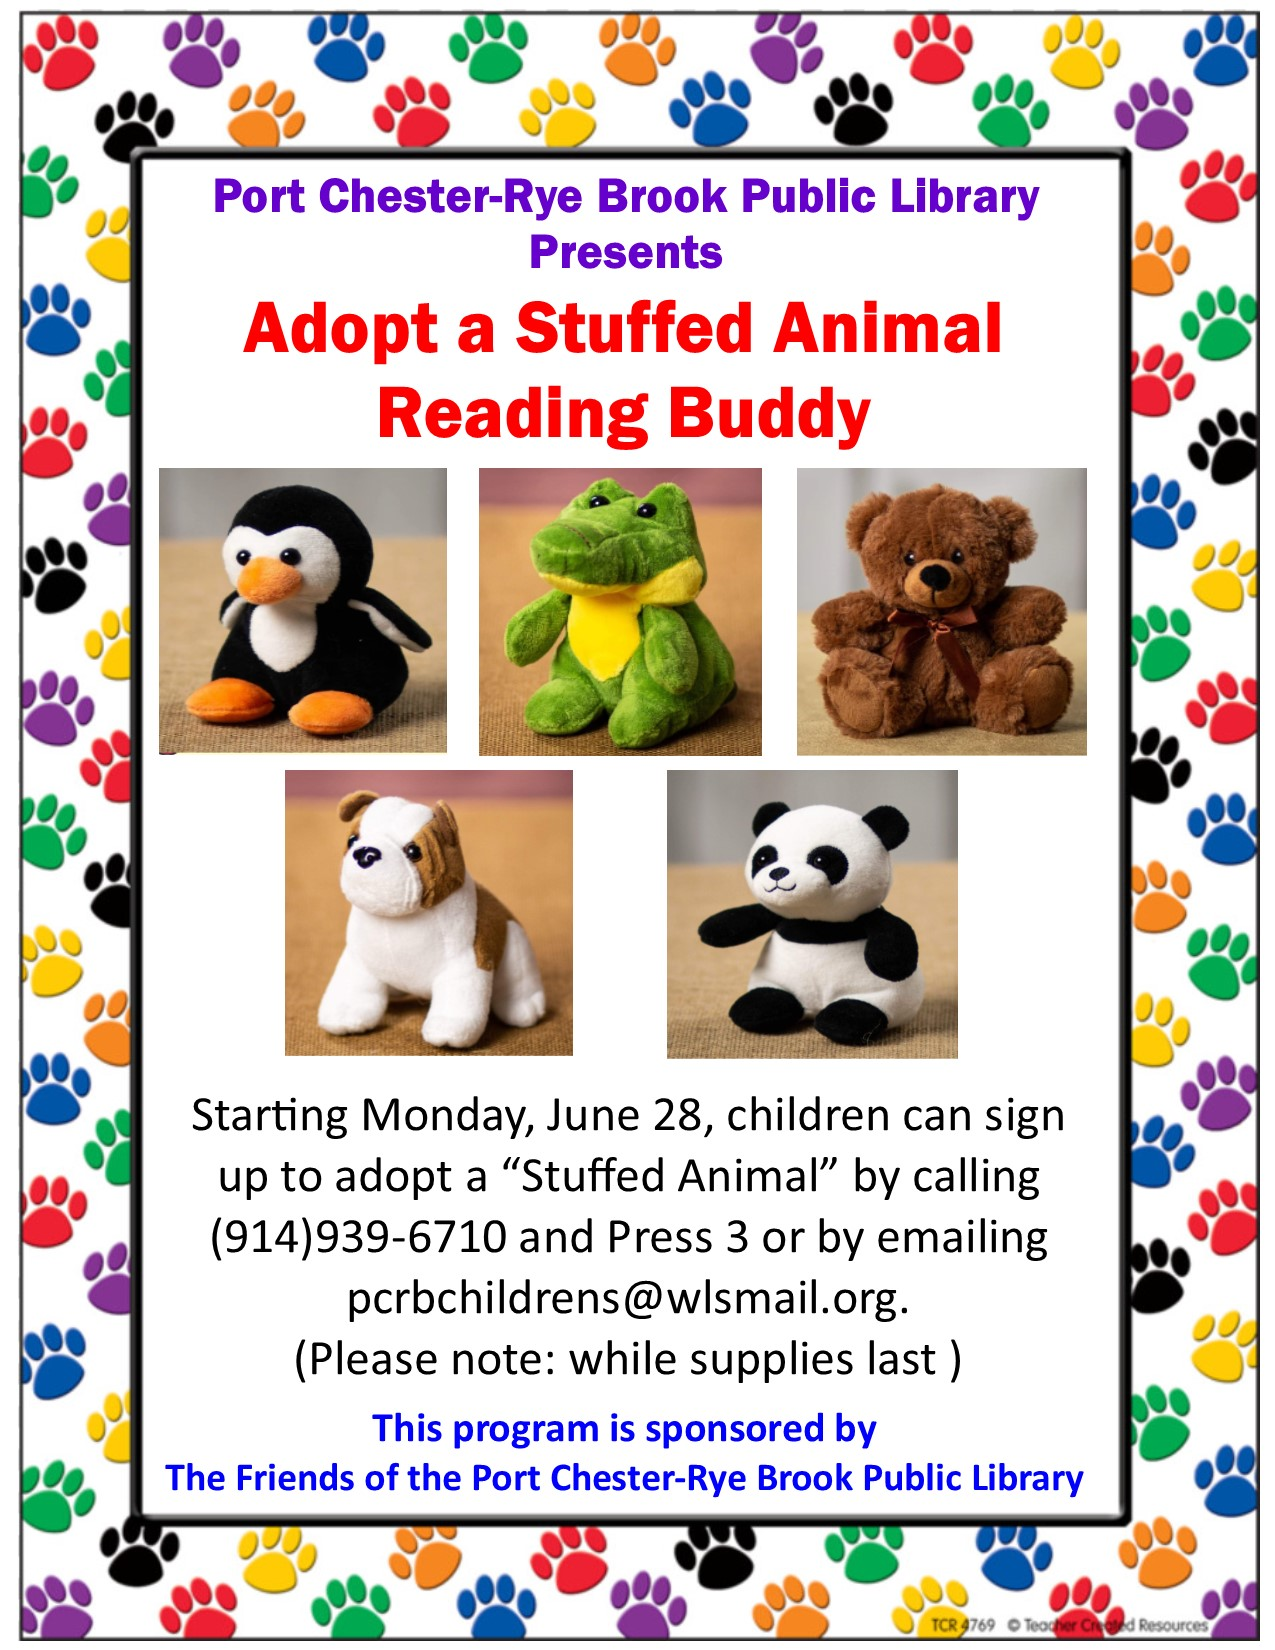 Adopt a Stuffed Animal Reading Buddy at Port Chester-Rye Brook Public Library